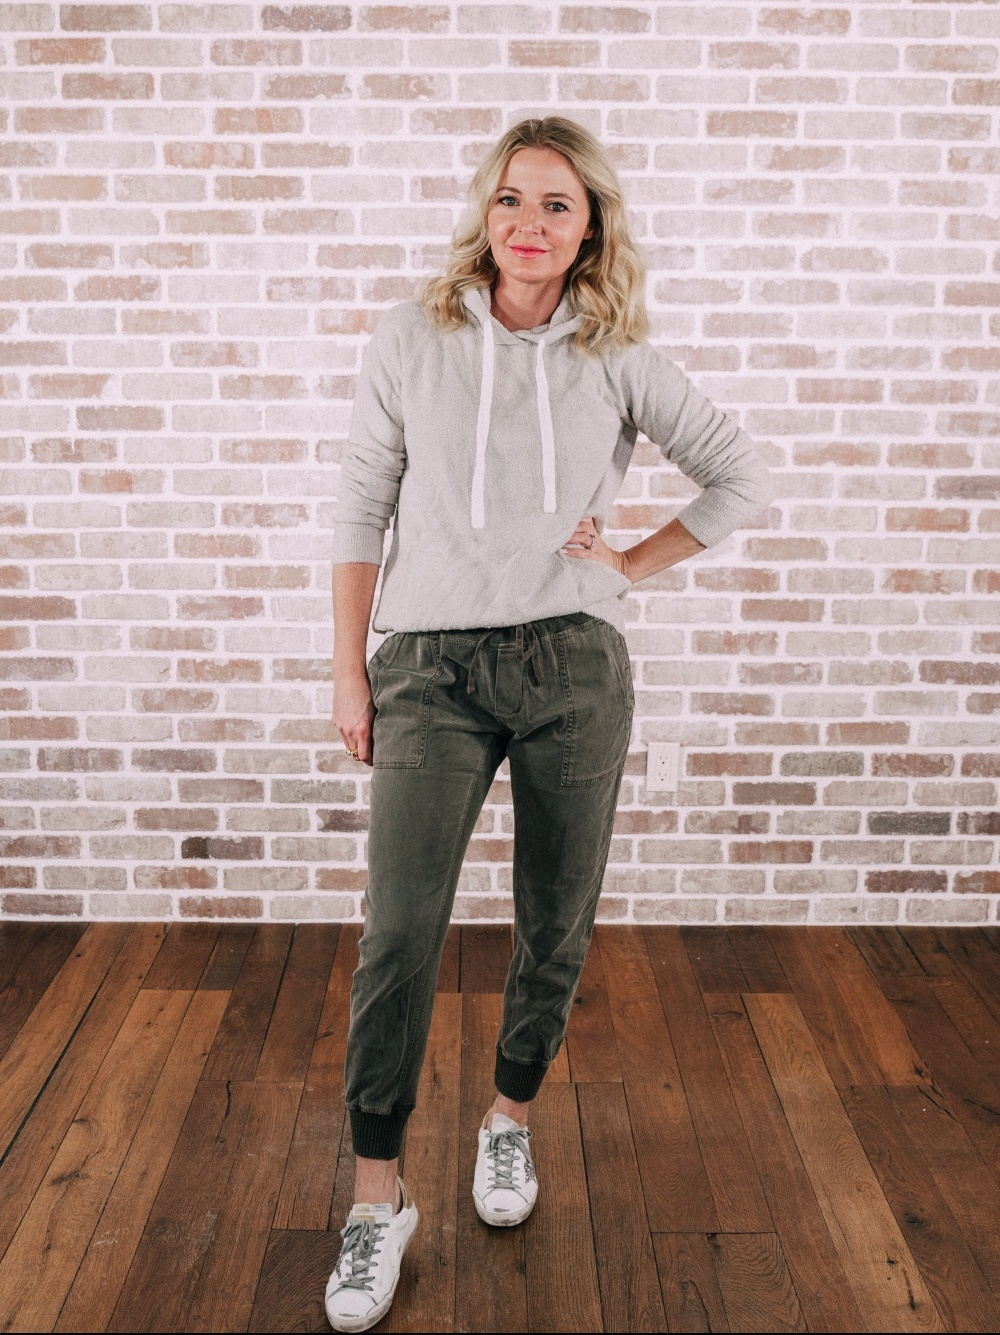 Loungewear Outfits, Fashion blogger Erin Busbee of BusbeeStyle.com sharing her favorite loungewear including a Barefoot Dreams hoodie and utility trend James Perse green joggers in Telluride, Colorado